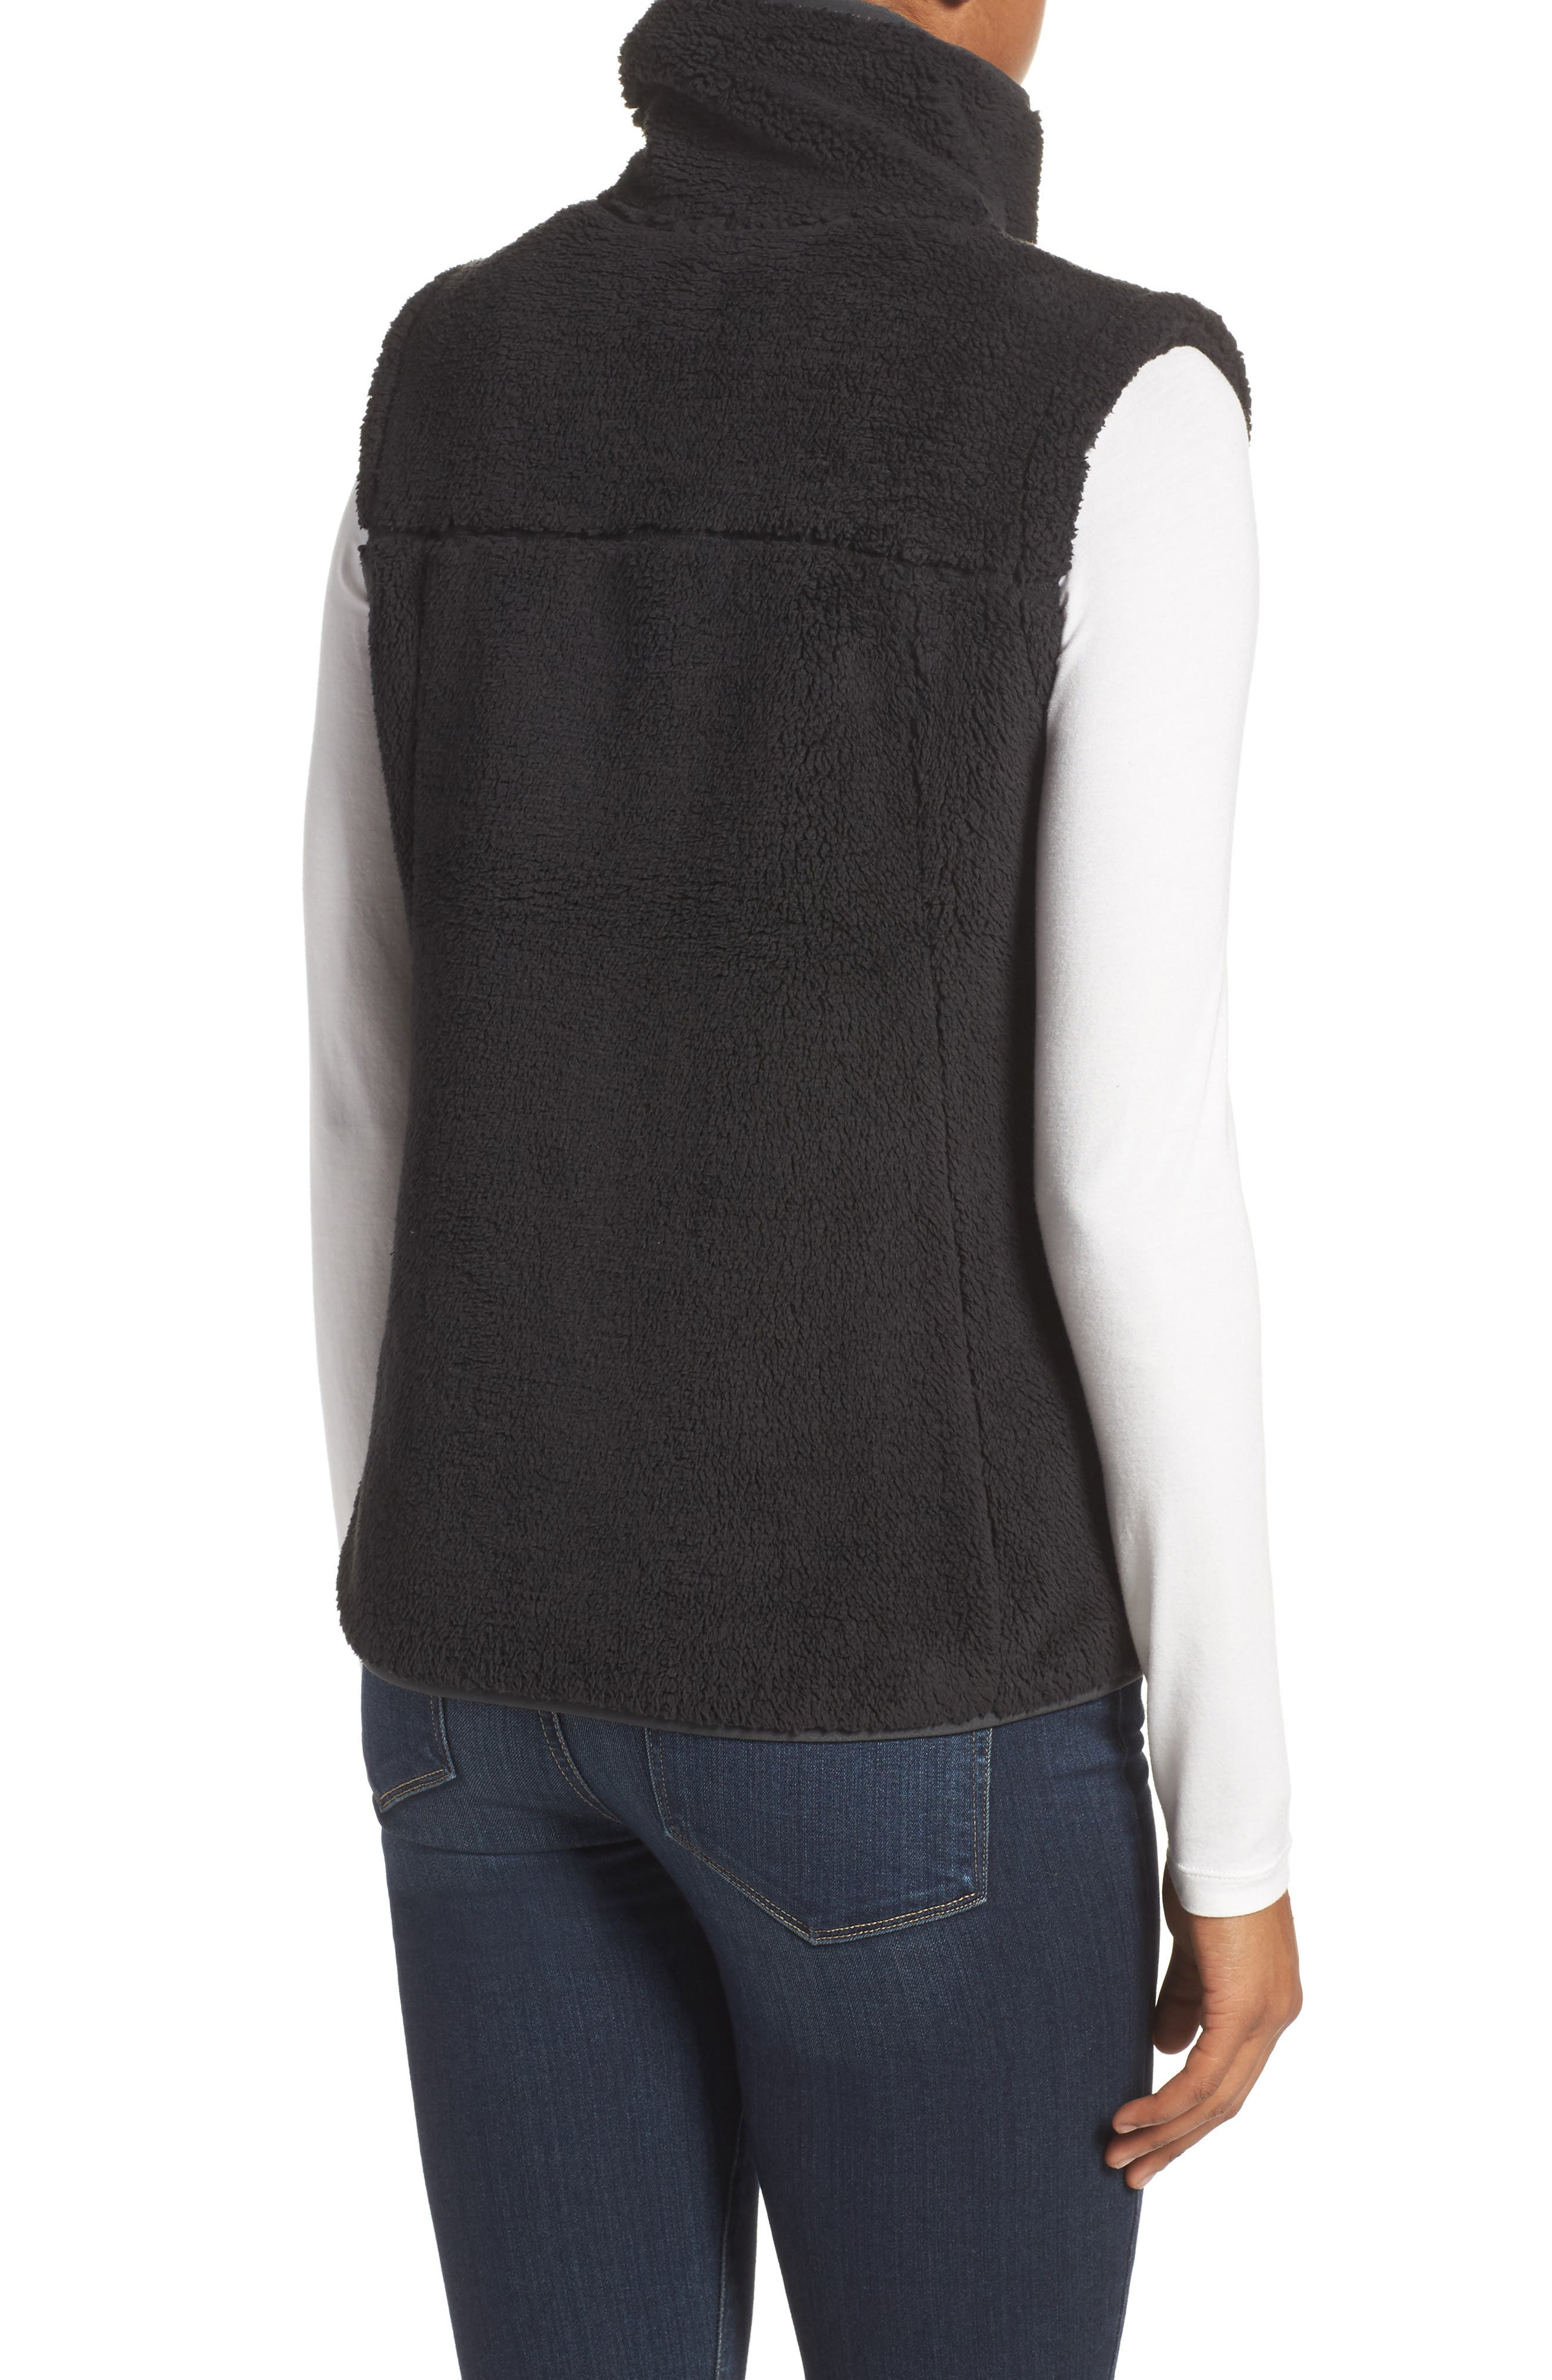 THE NORTH FACE, Campshire Vest, Alternate thumbnail 2, color, 001